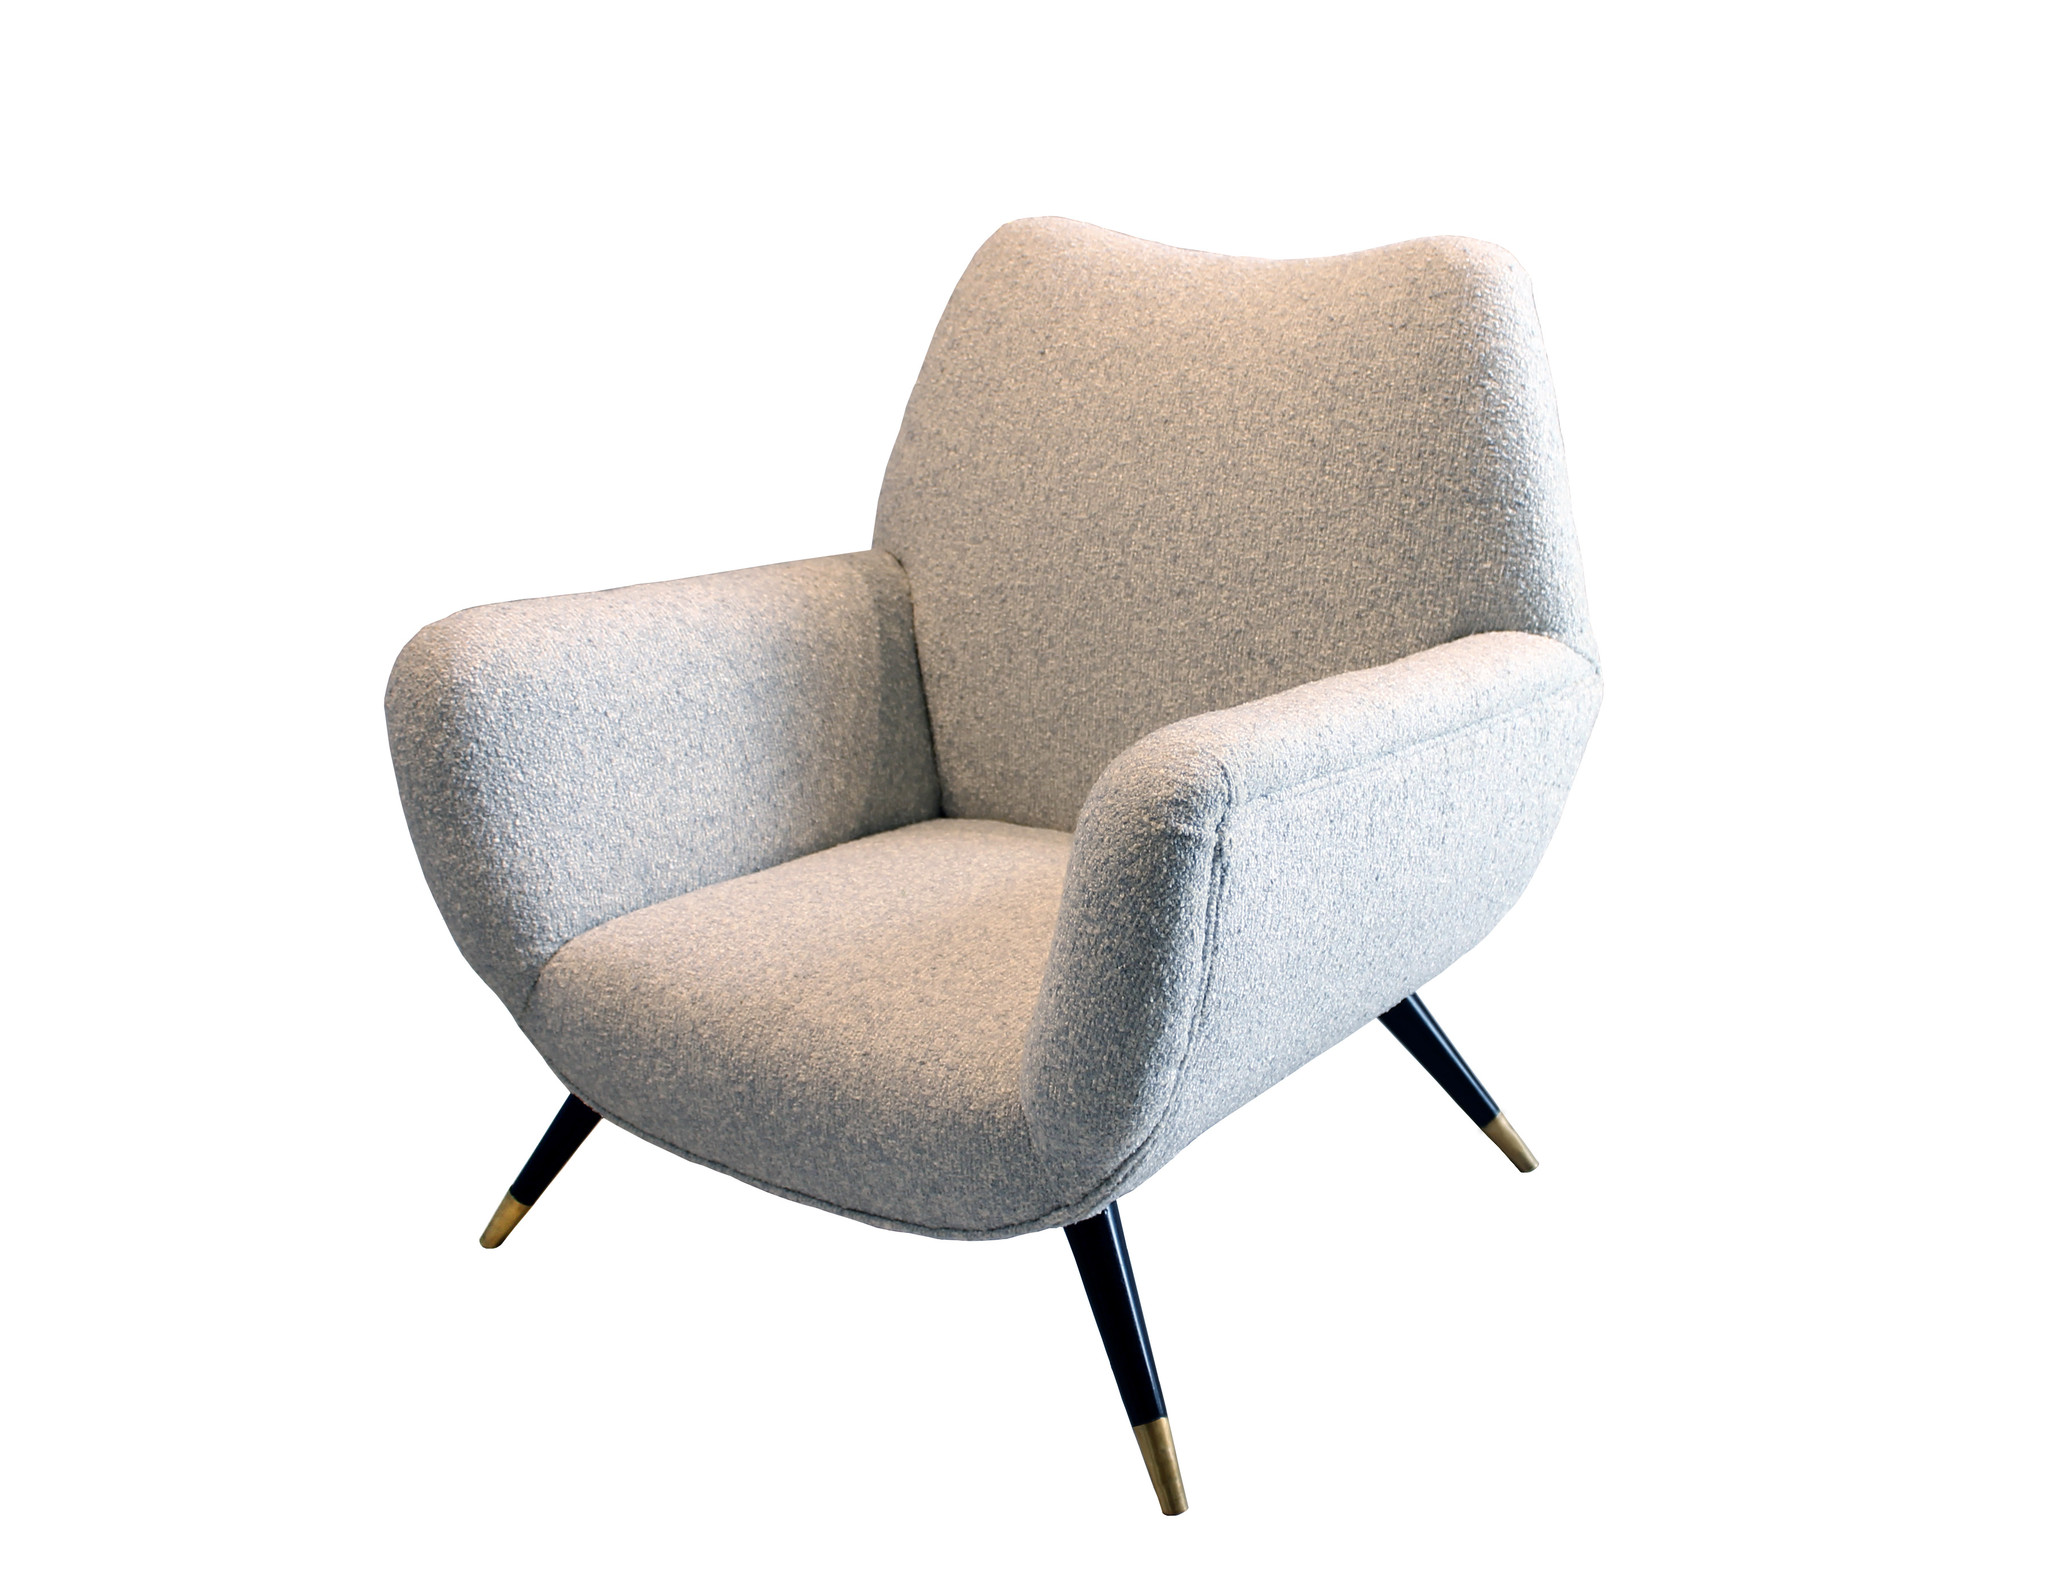 Pair of Midcentury Italian Upholstered Club Chairs